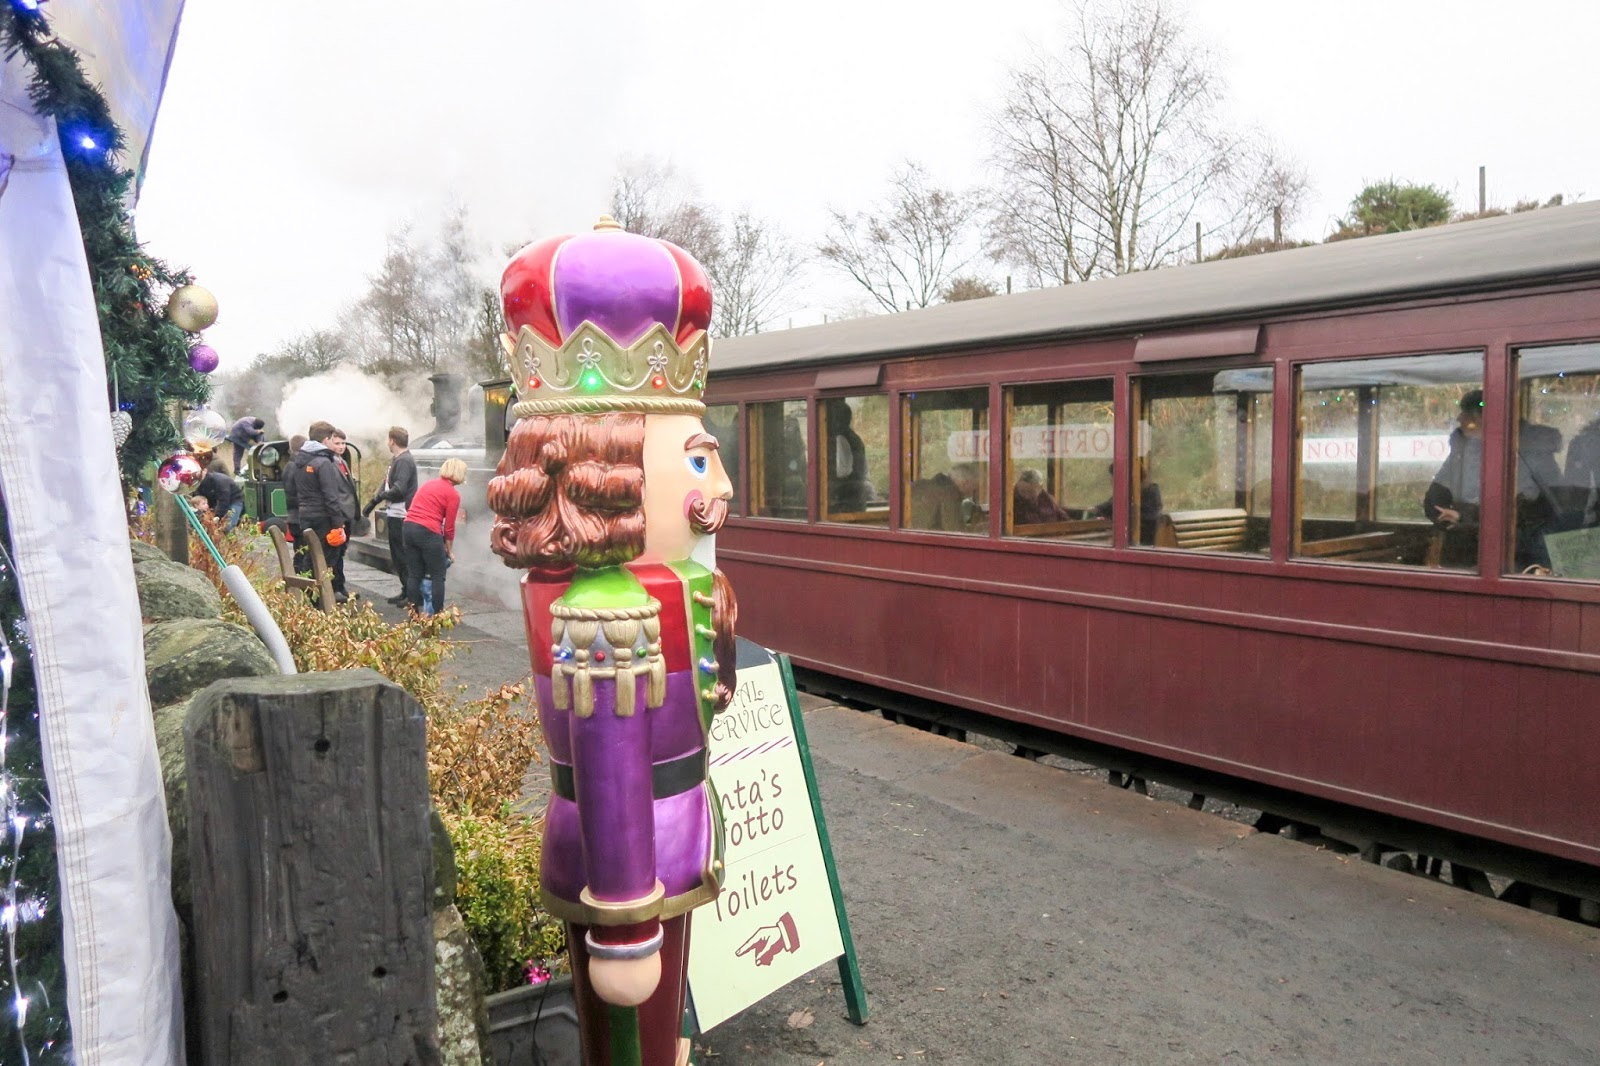 Which is the best 'Santa Train' in the North East? Tanfield Railway North Pole Express or Polar Express?